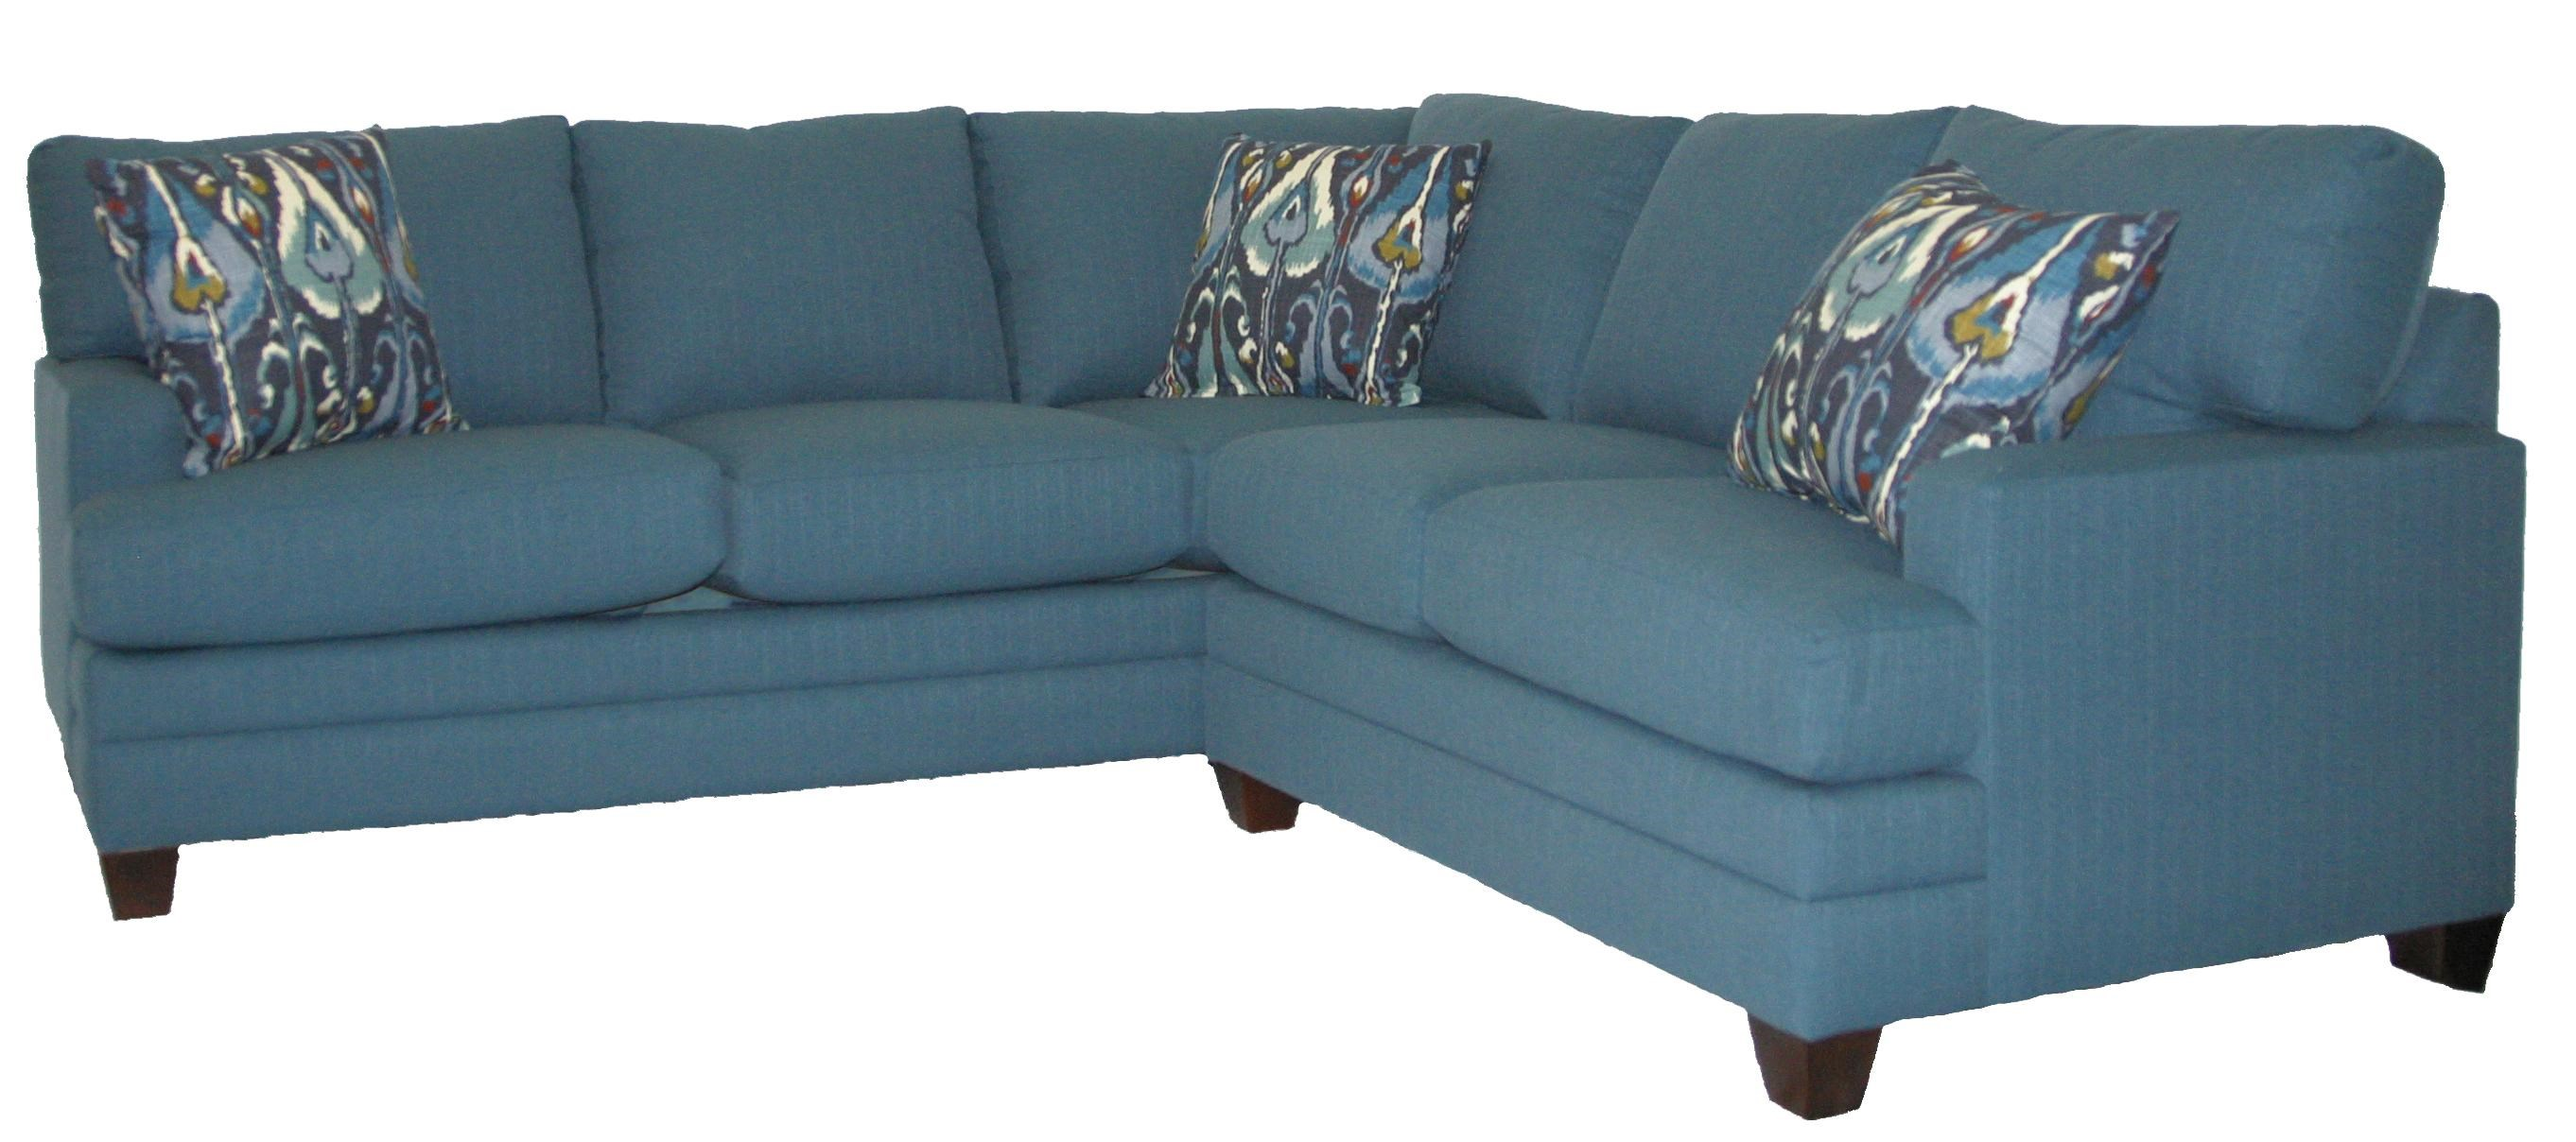 Grand Chaise Slipcover L Shaped Sectional Sofa Cover Bassett Shaped Sectional Group Bassett L Shaped Upholstered Sectional Group Becker Furniture L Shaped Sectional houzz 01 L Shaped Sectional